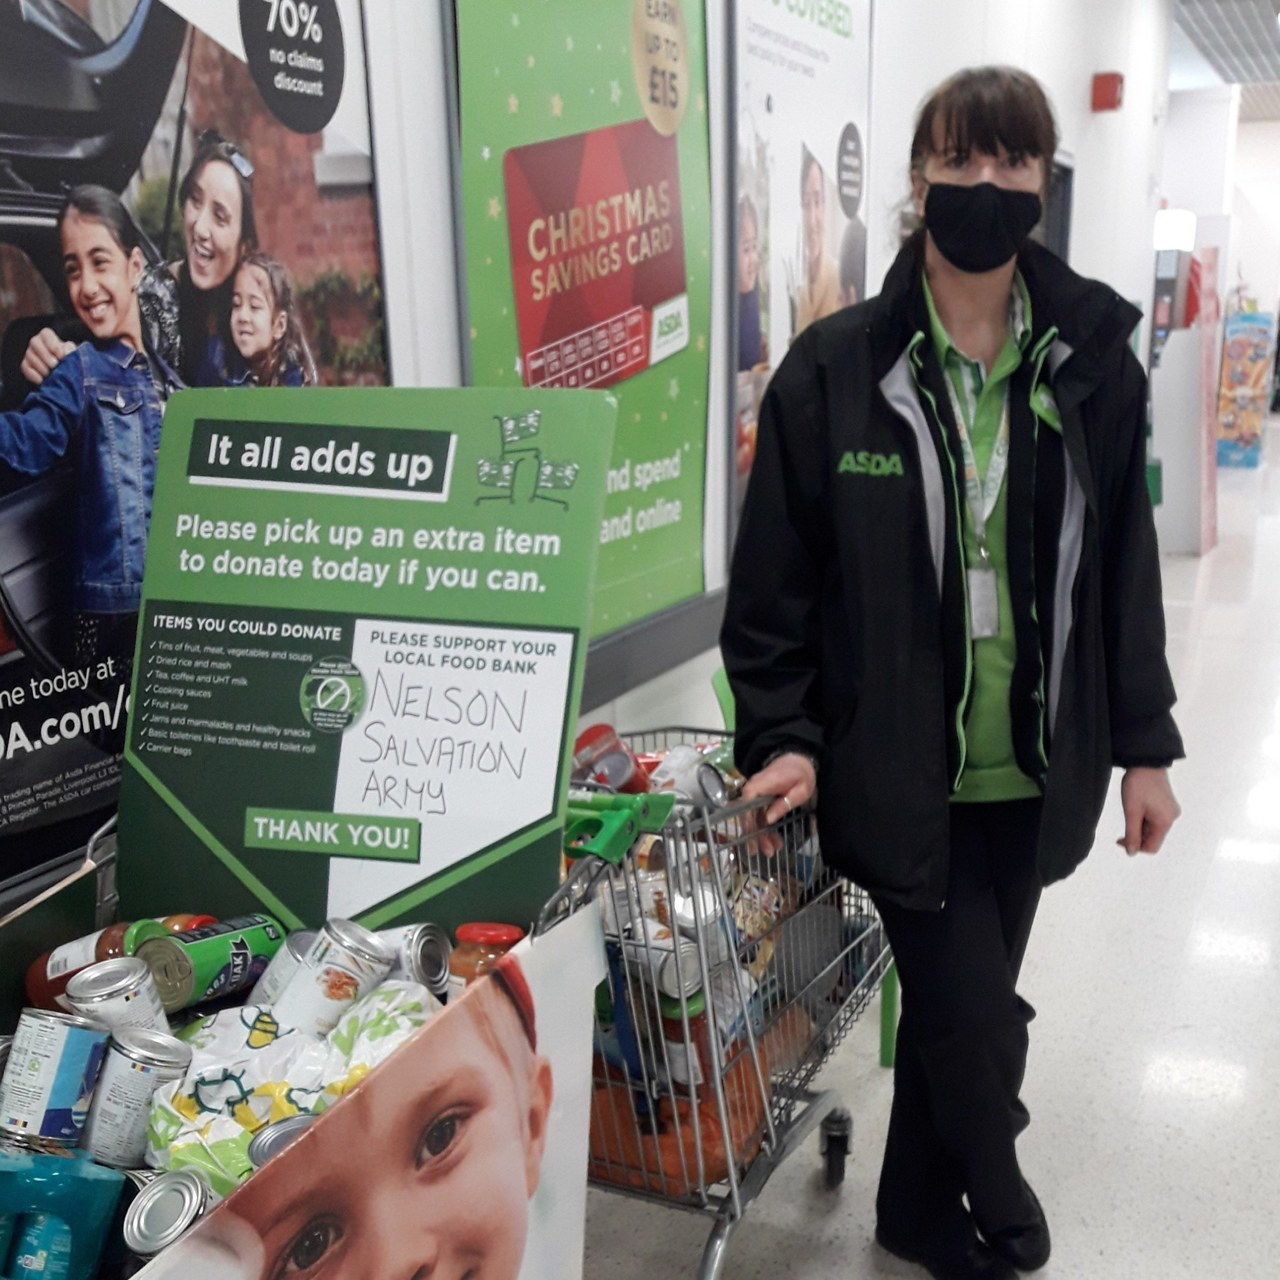 Am amazing week for our foodbank with two trollies being donated   Asda Colne